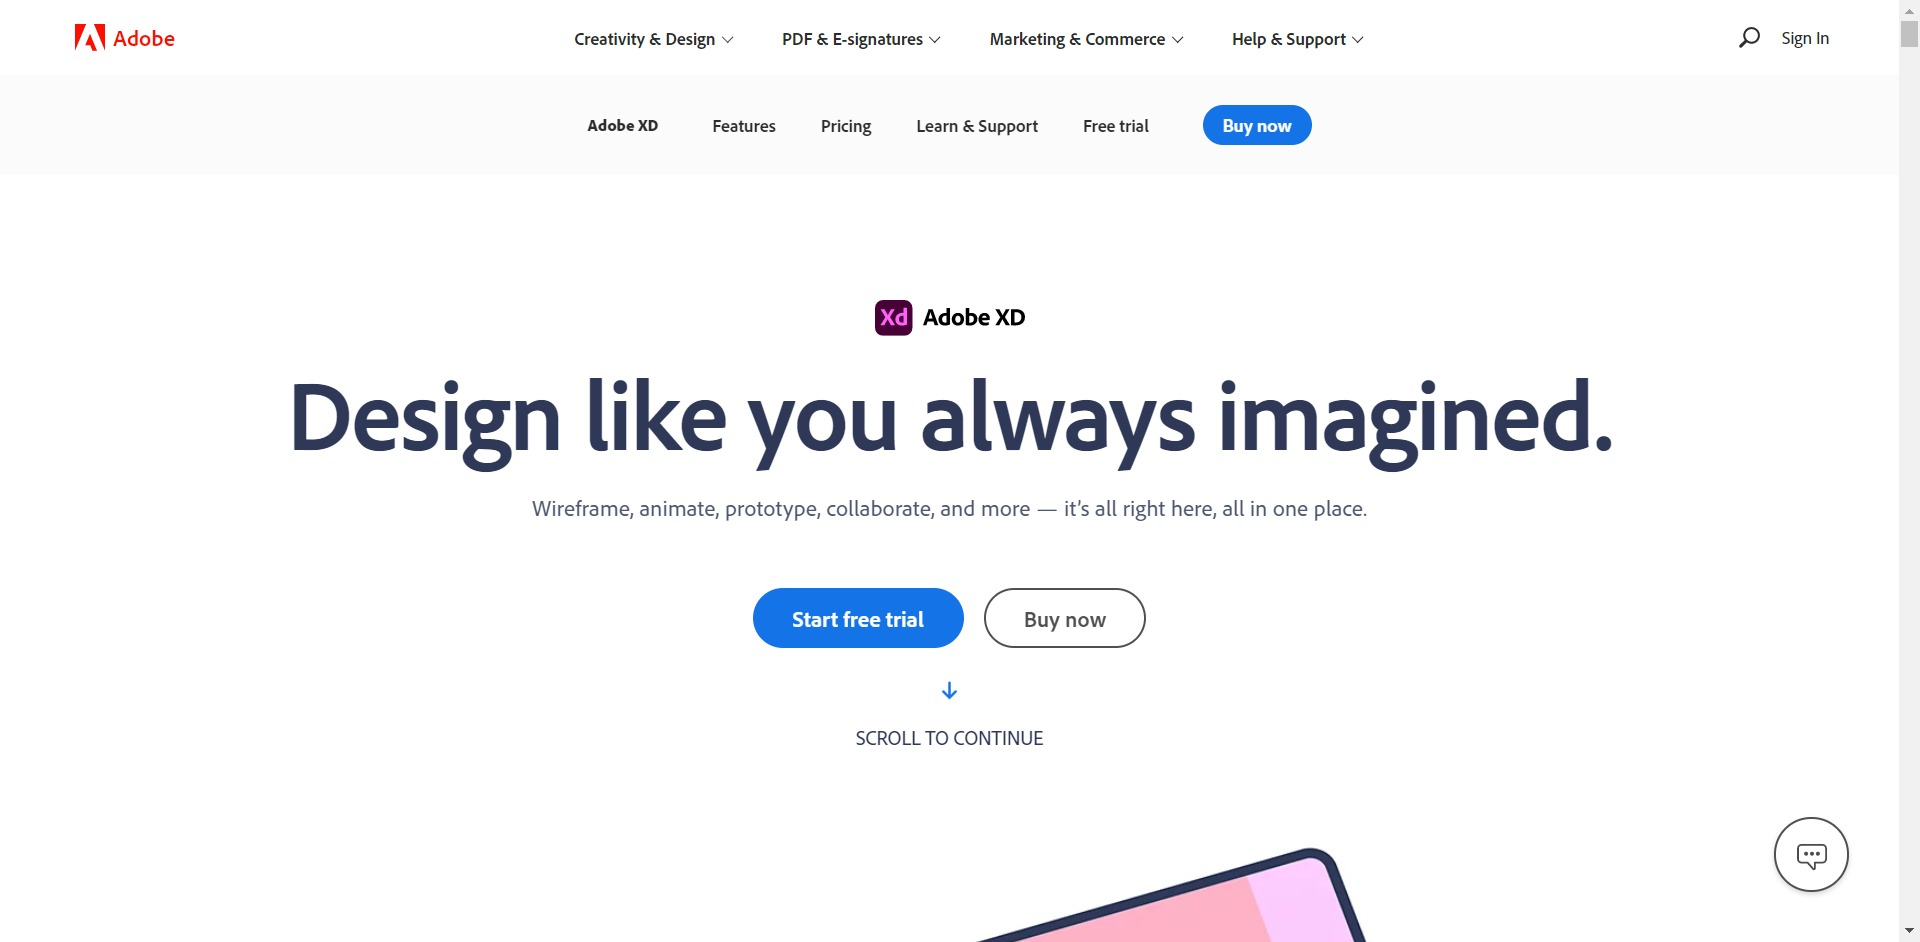 Adobe XD home page